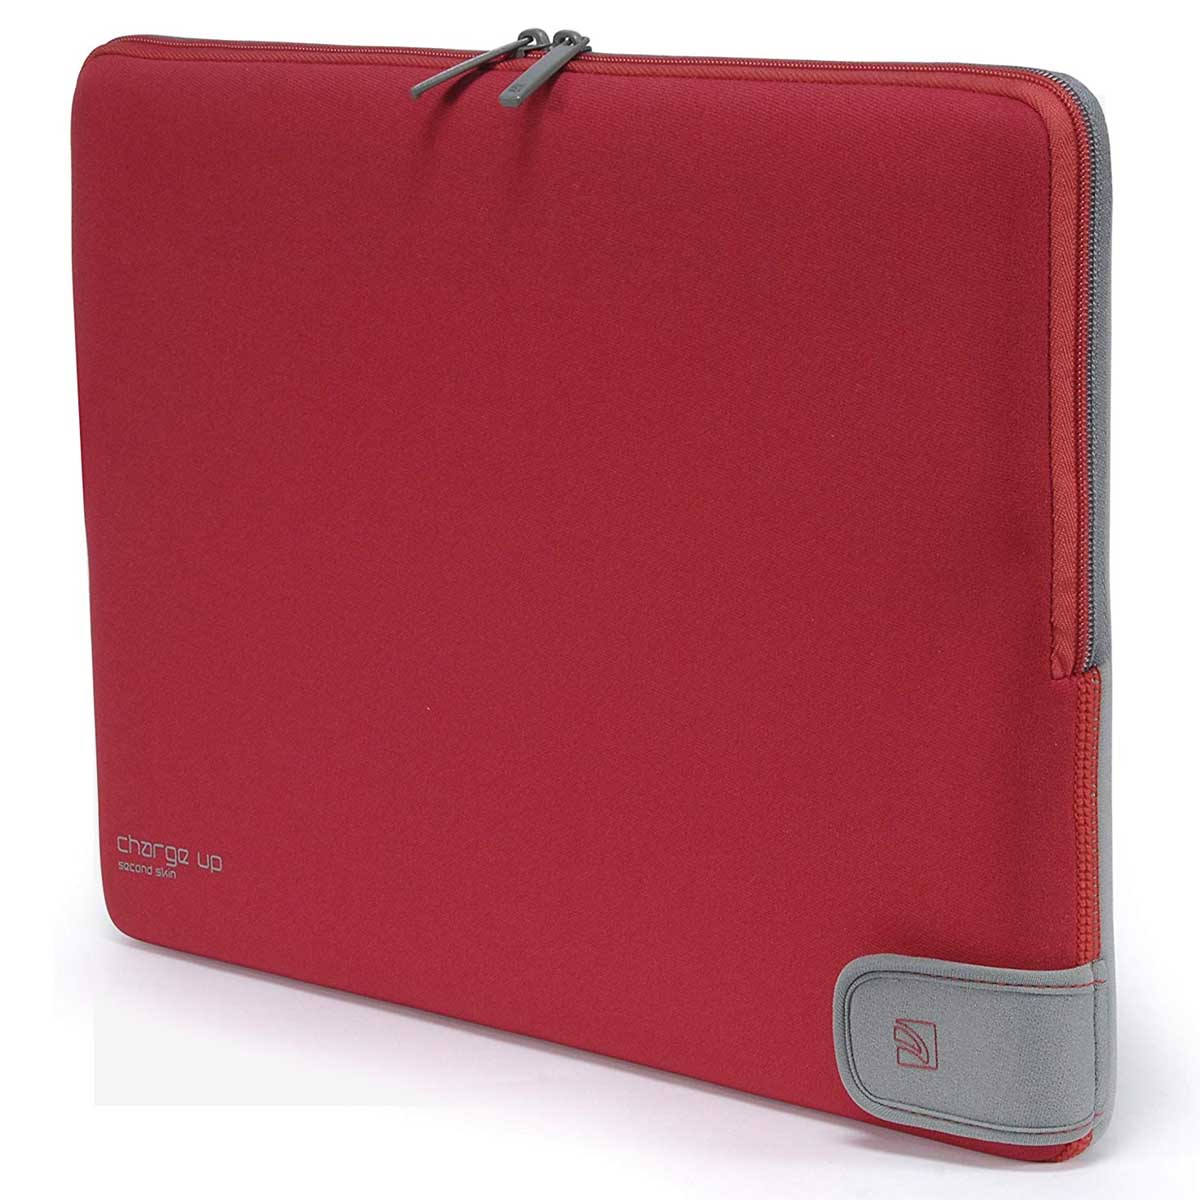 Tucano Charge_Up Bicolor Second Skin sleeve for MacBook Pro 15""